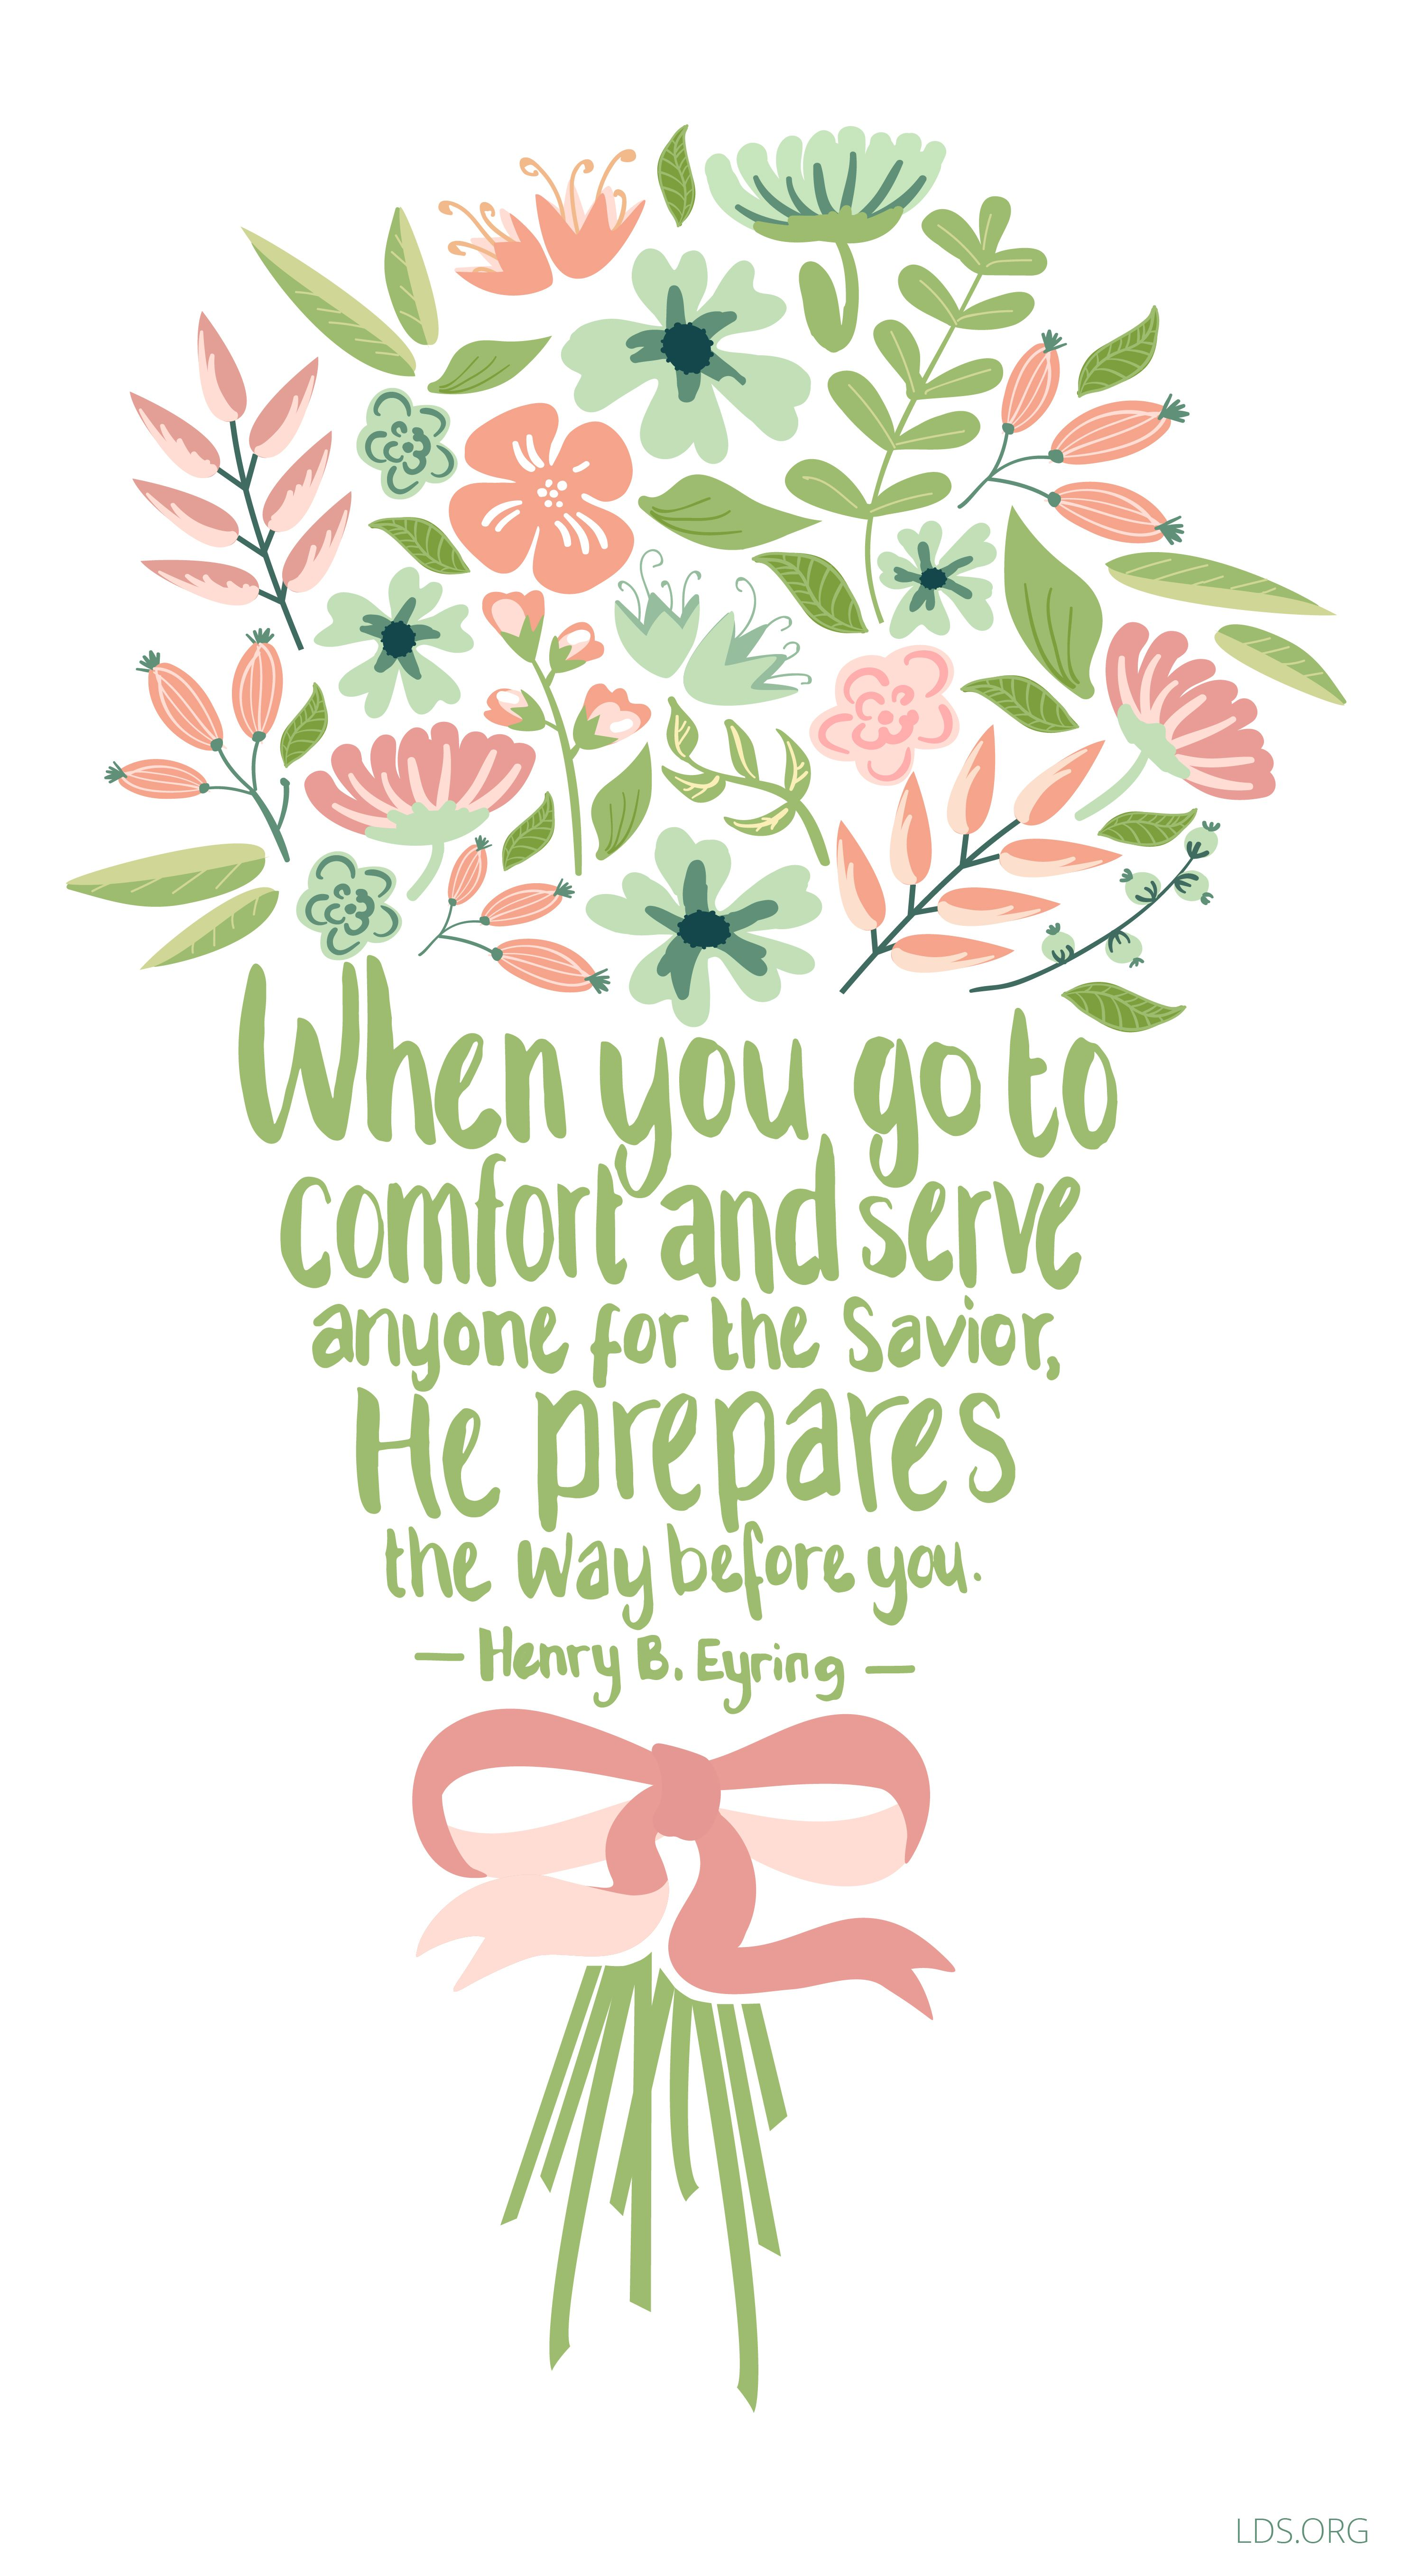 When You Go To Comfort And Serve Anyone For The Savior He